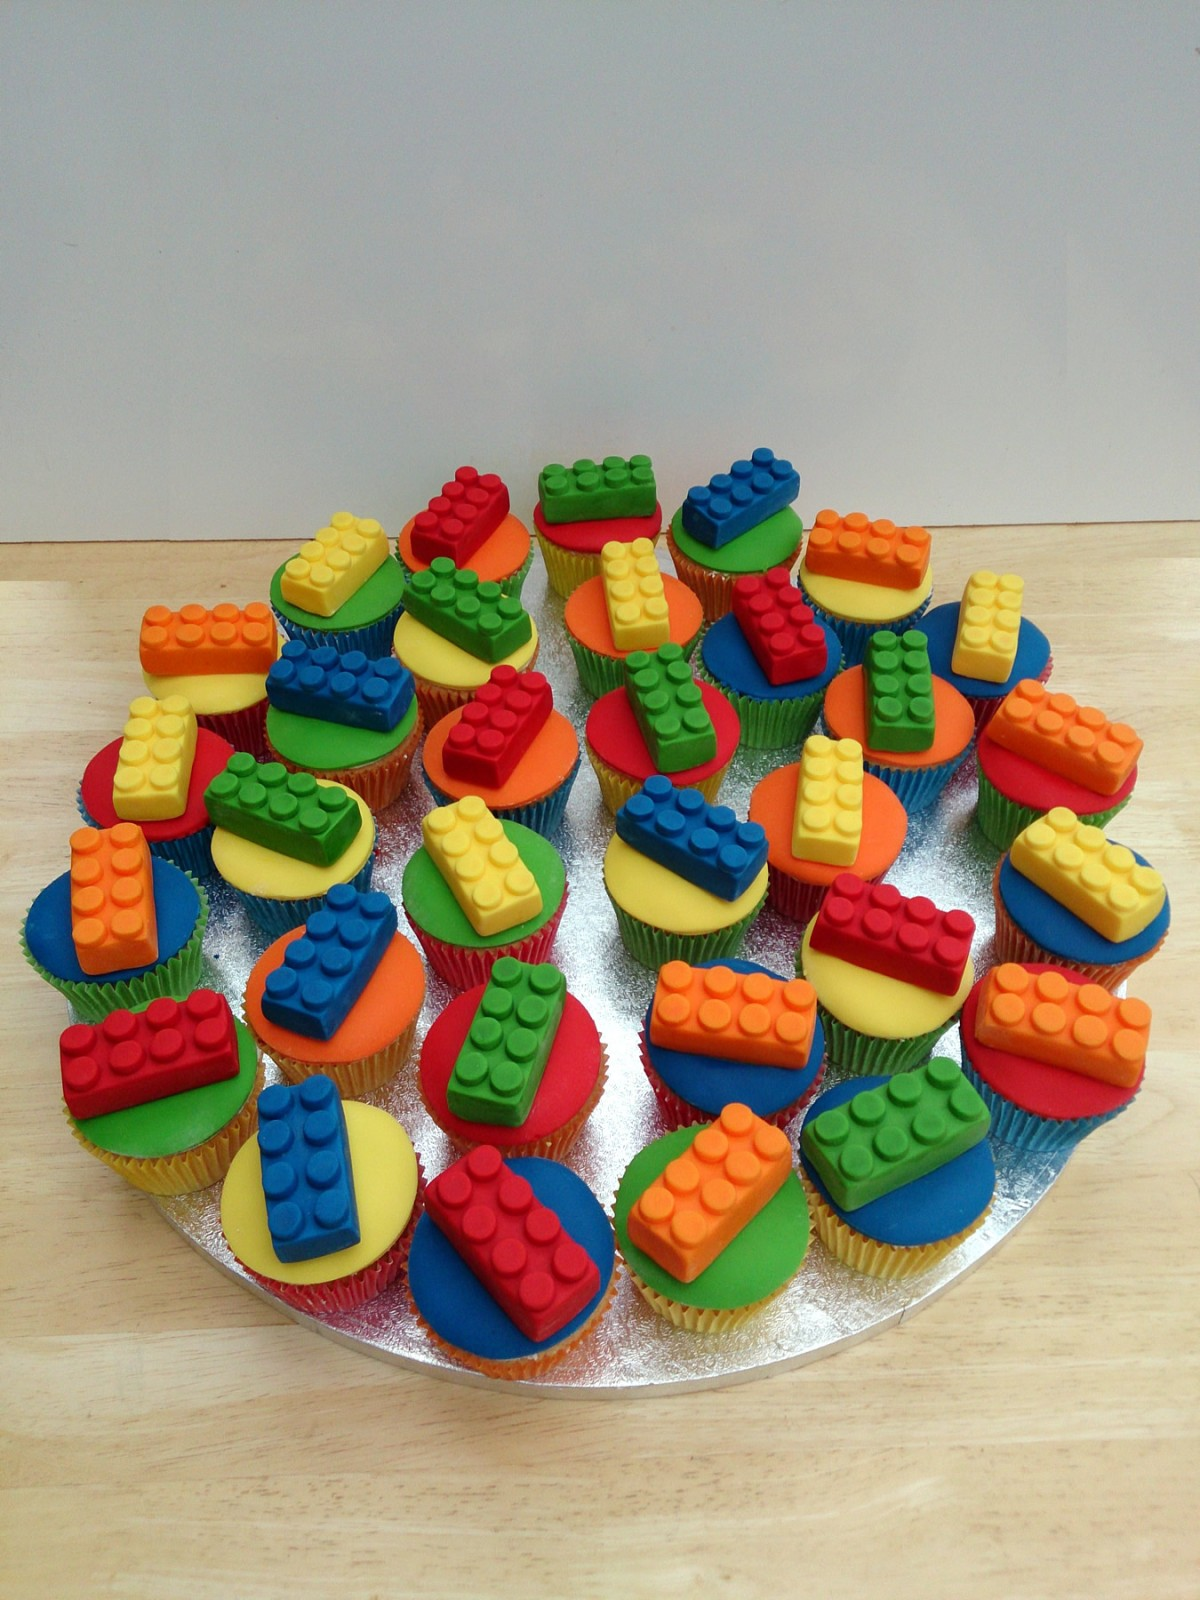 Lego Block Themed Novelty Cupcakes 171 Susie S Cakes